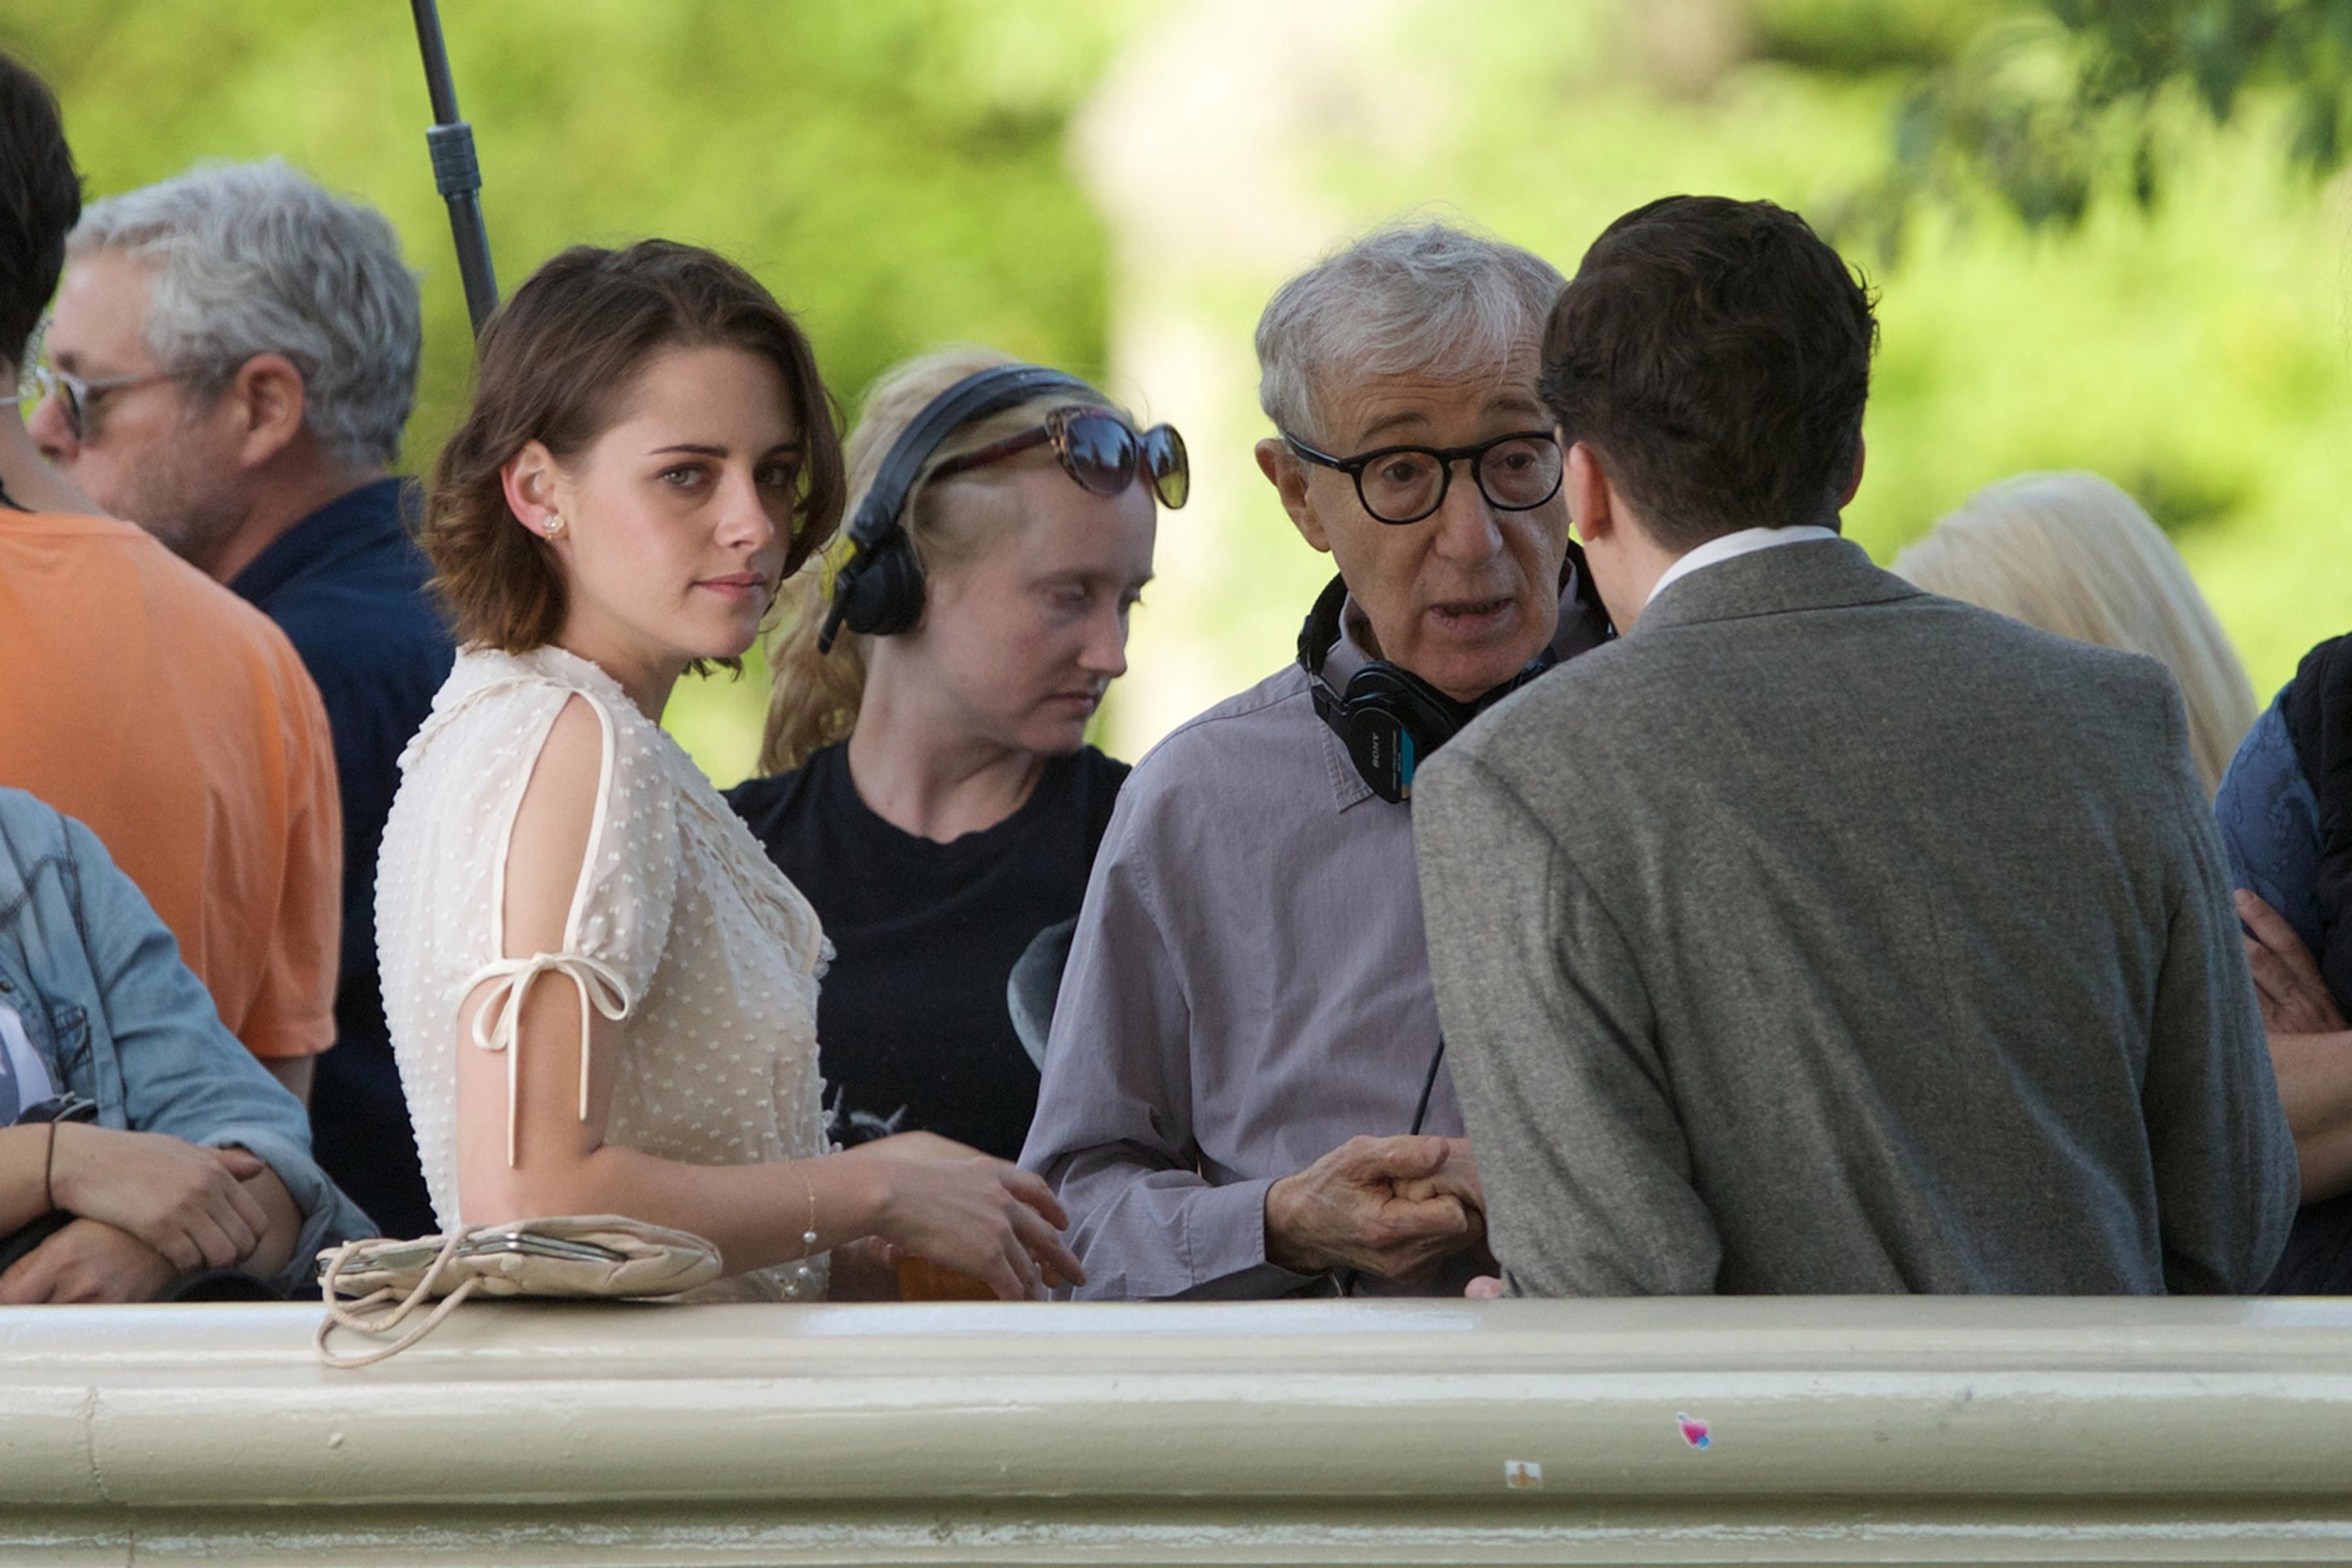 Kristen Stewart shares a passionate kiss with a co-star on the set of Woody Allen's new movie in Central Park, NYC